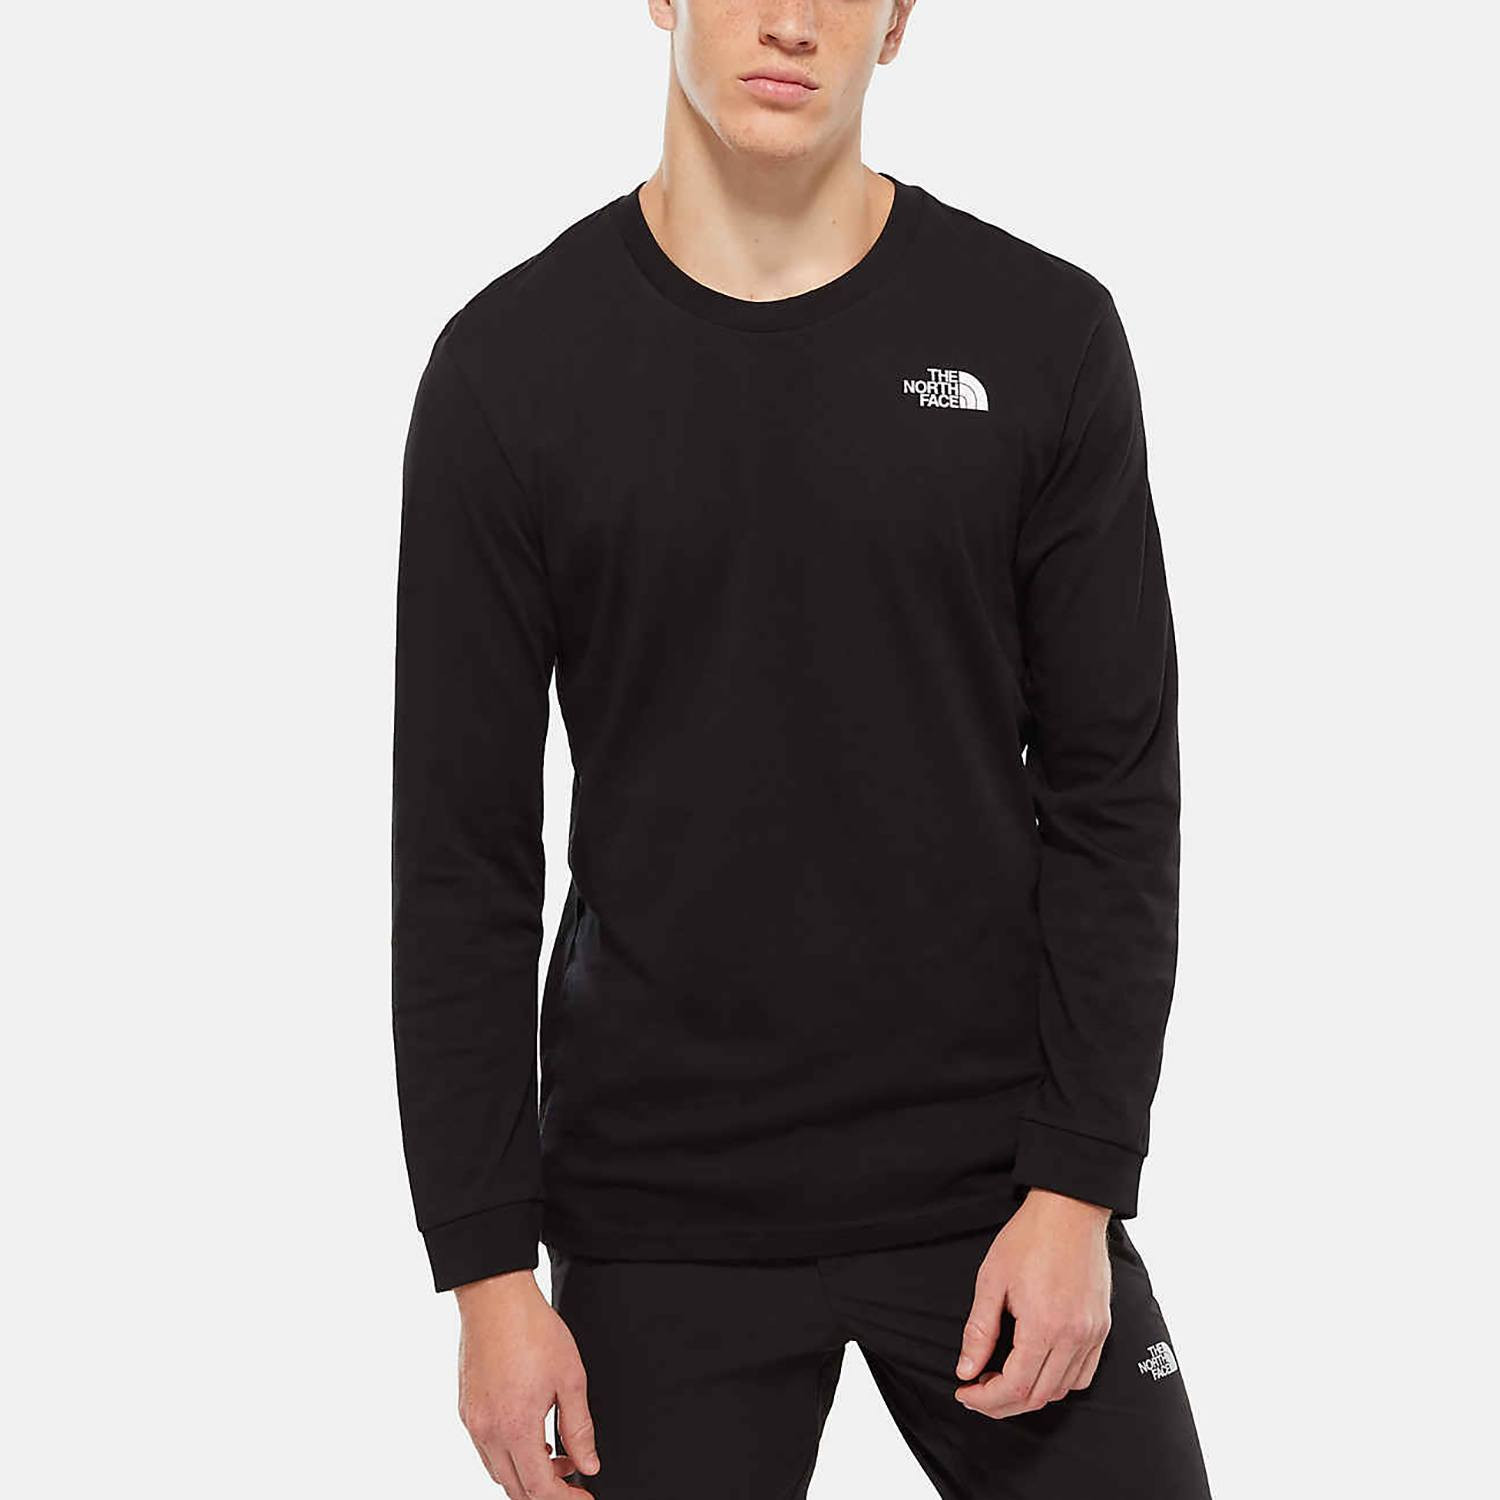 THE NORTH FACE Simple Dome Ανδρική Μπλούζα με Μακρύ Μανίκι (9000019774_4617)